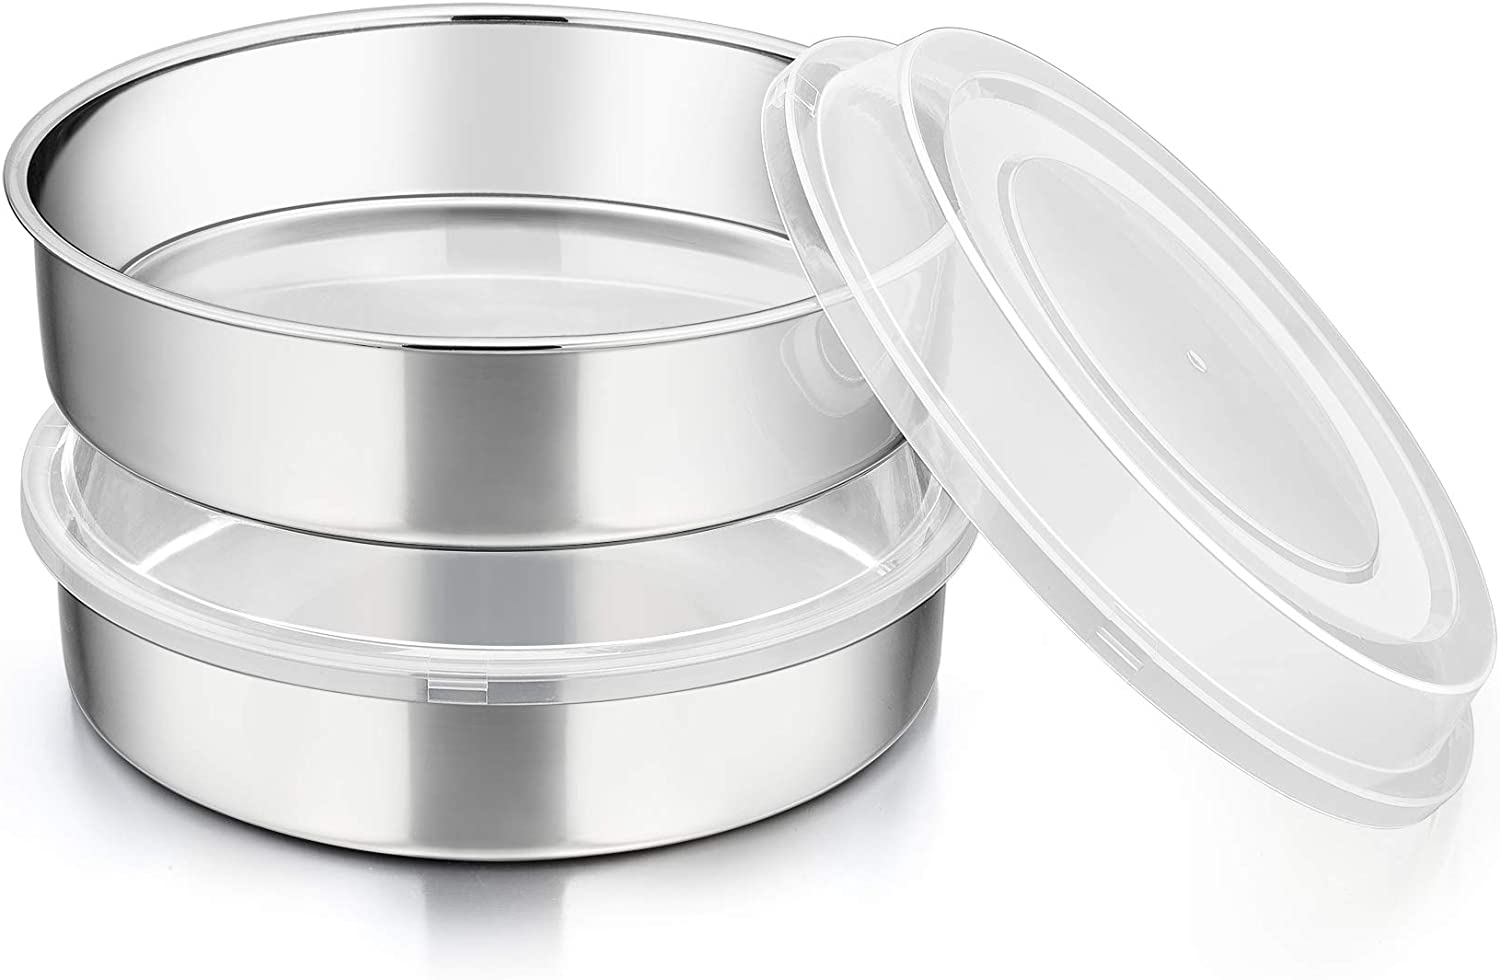 8-inch Round Baking Cake Pan with Lid, P&P CHEF Stainless Steel Cake Pan and Plastic Cover Set, For Wedding Birthday Picnic, Reusable & Durable, Dishwasher Safe (2 Pans + 2 Lids)